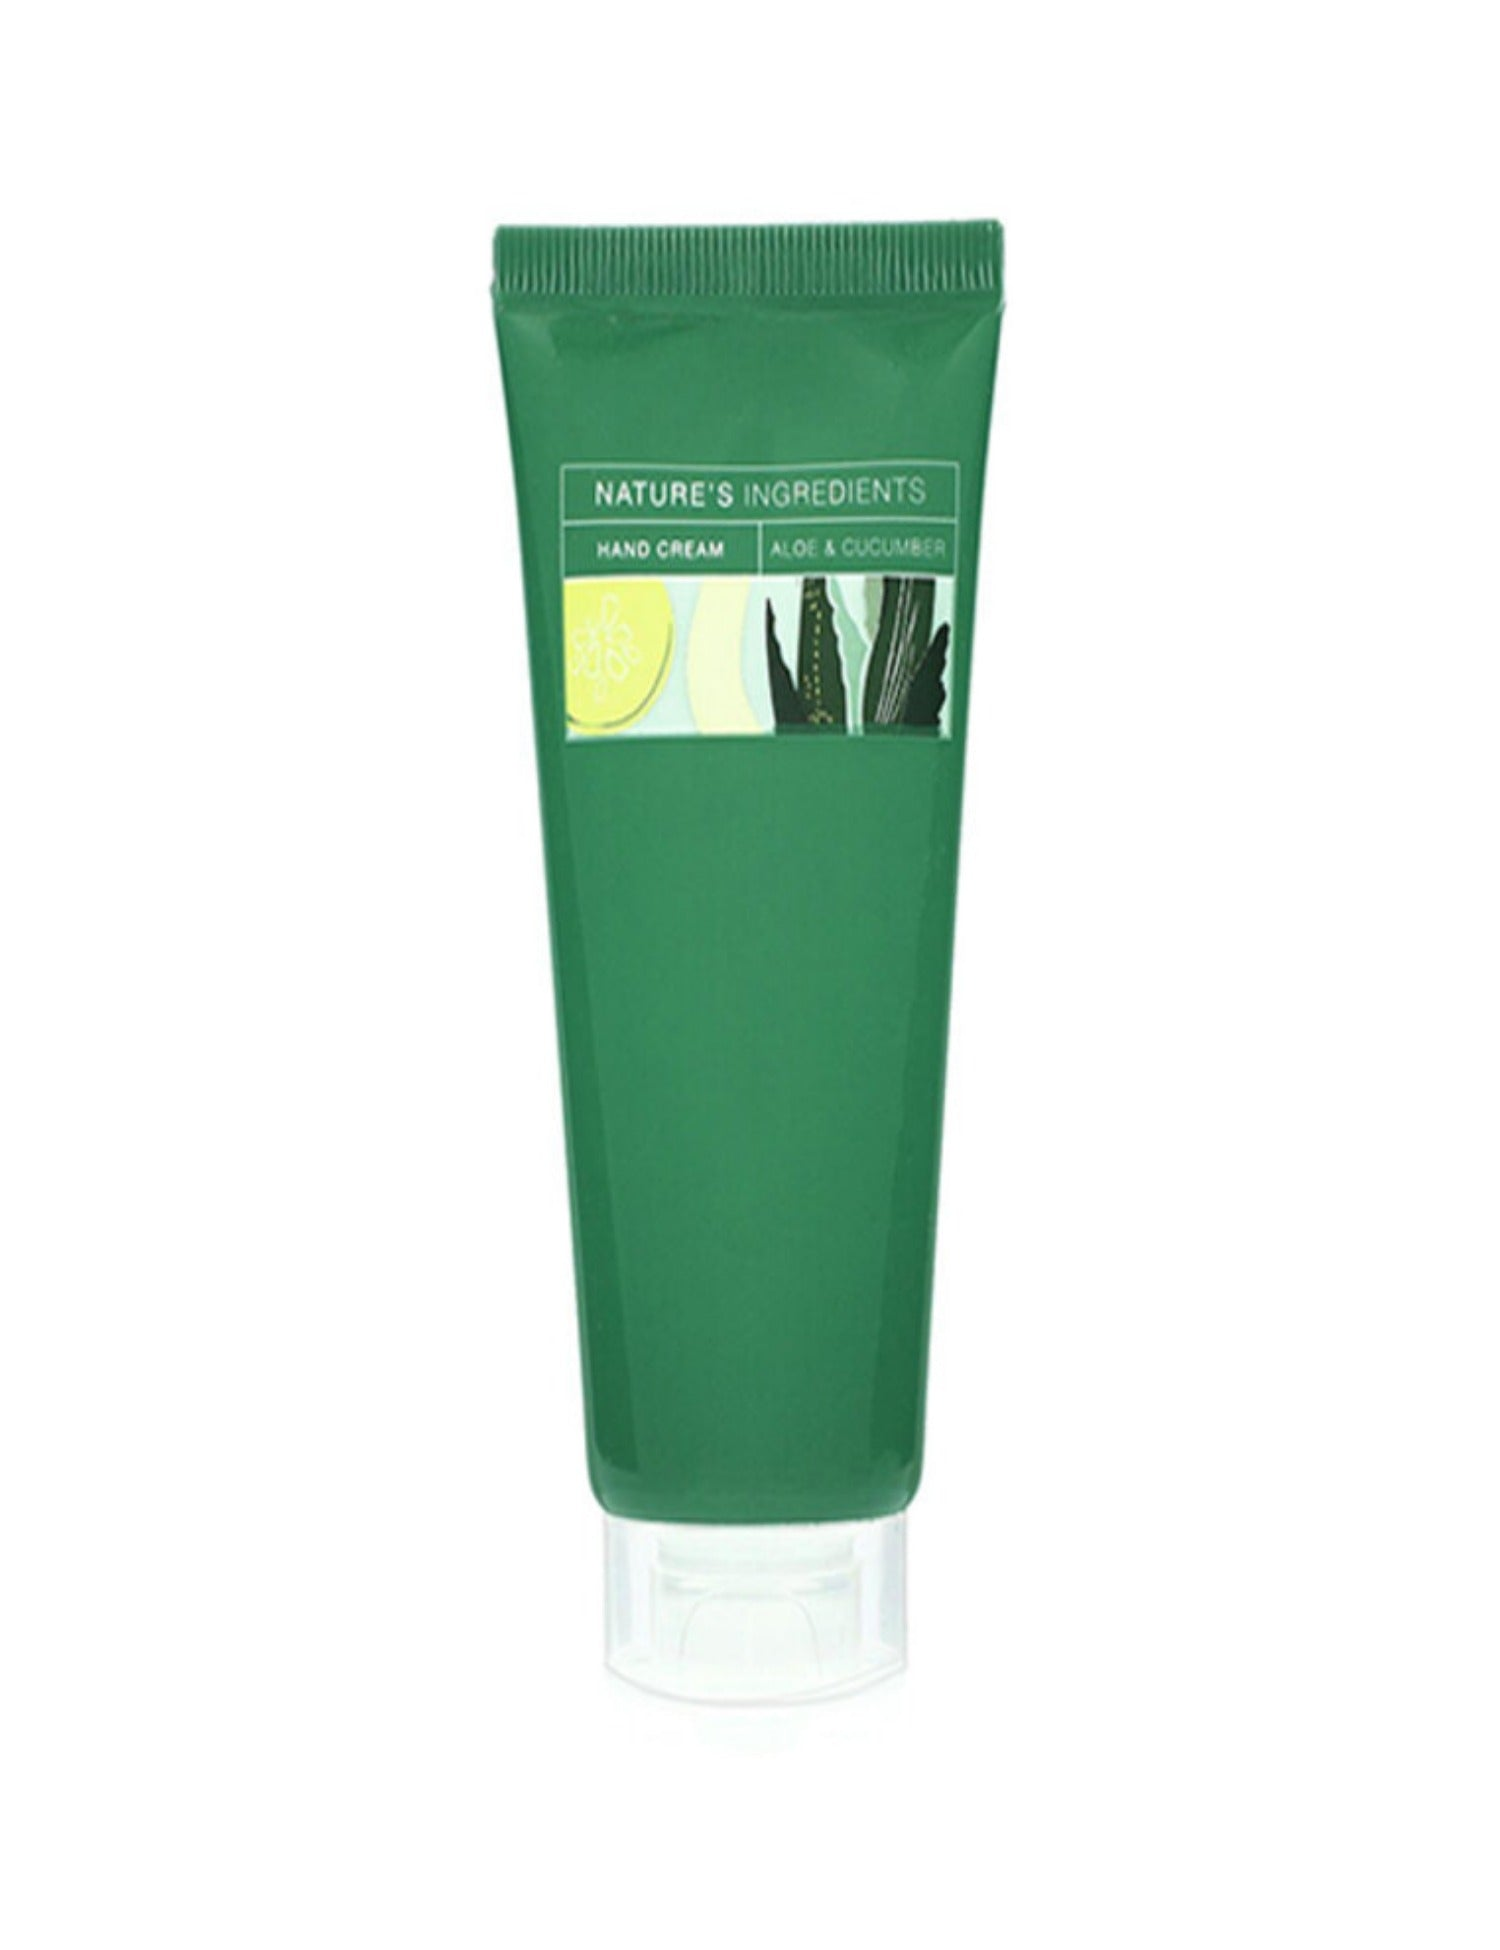 Aloe Cucumber Hand Cream 60ml